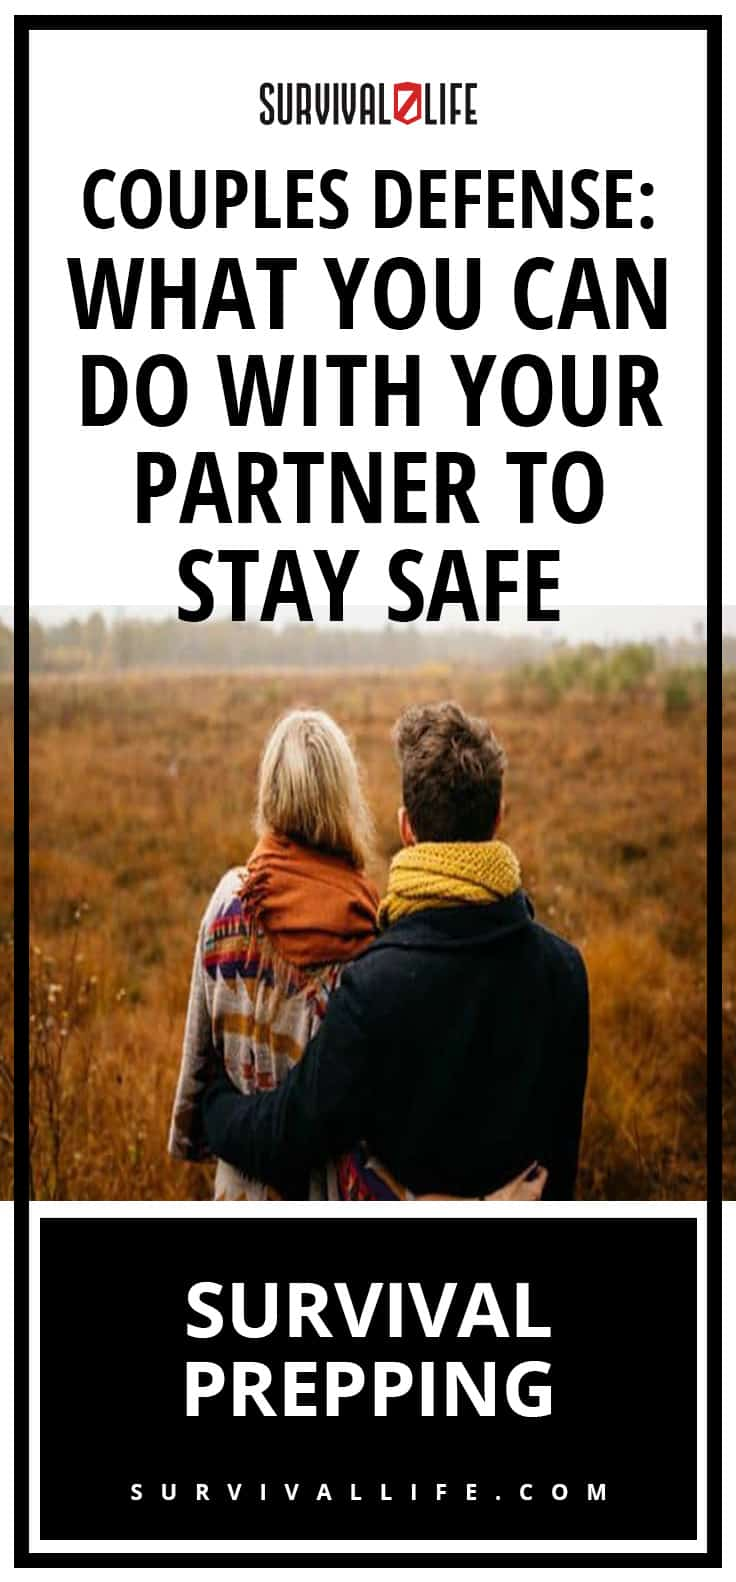 Placard | Couples Defense to stay safe | Couples Defense: What You Can Do With Your Partner To Stay Safe